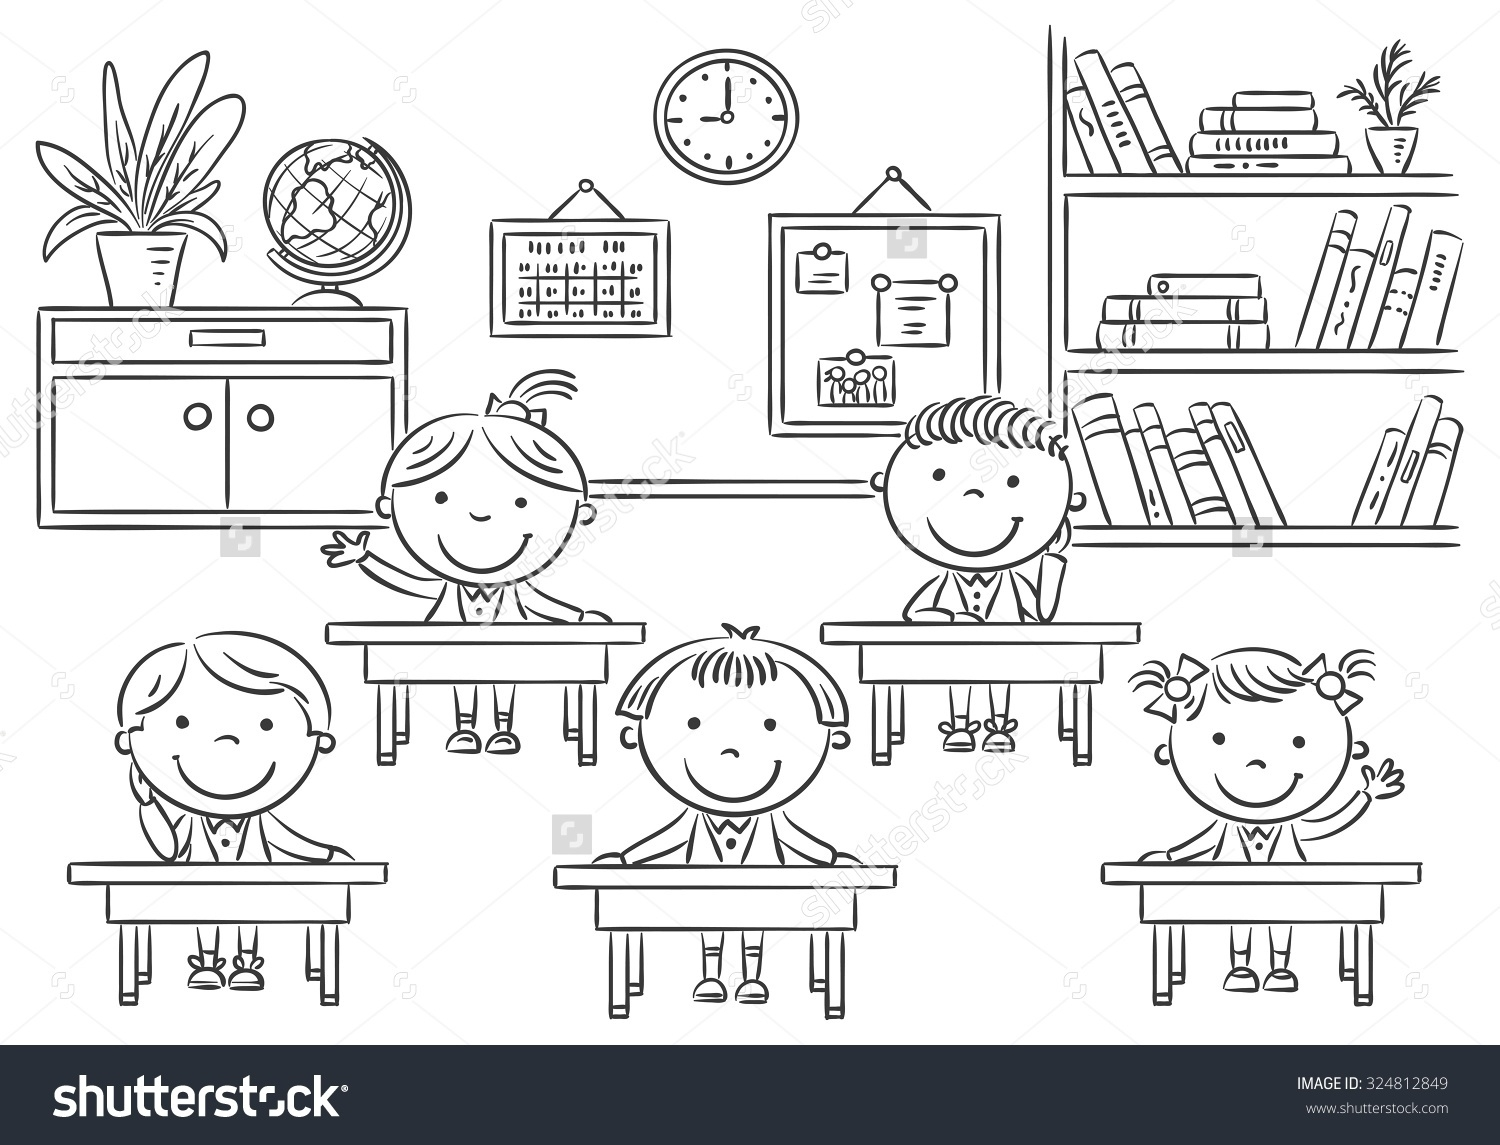 School Room Clipart Black And White.